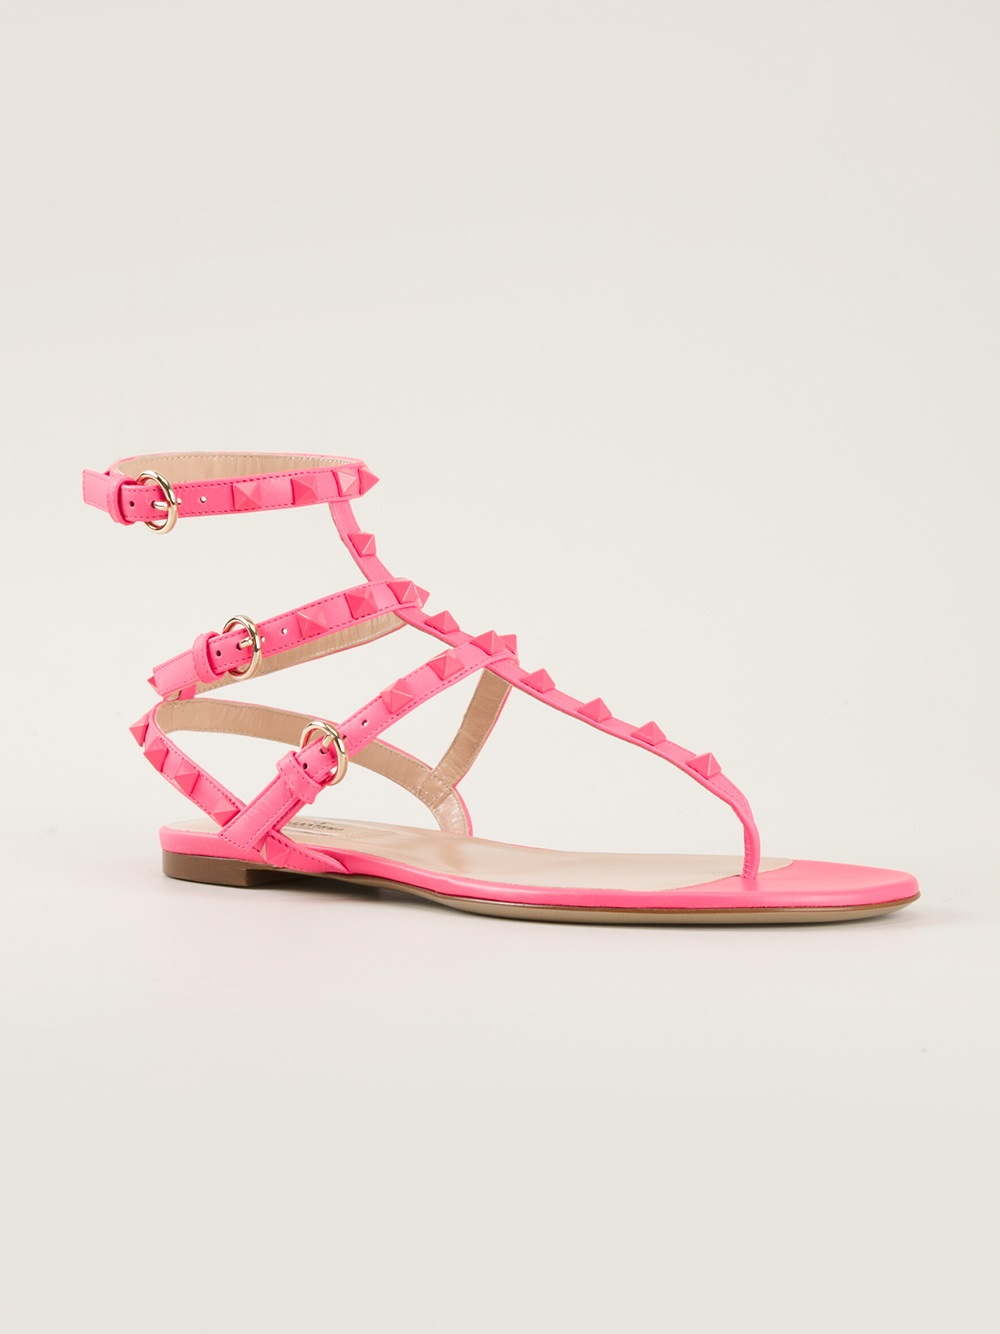 Valentino Rockstud Sandal In Pink Pink Amp Purple Lyst